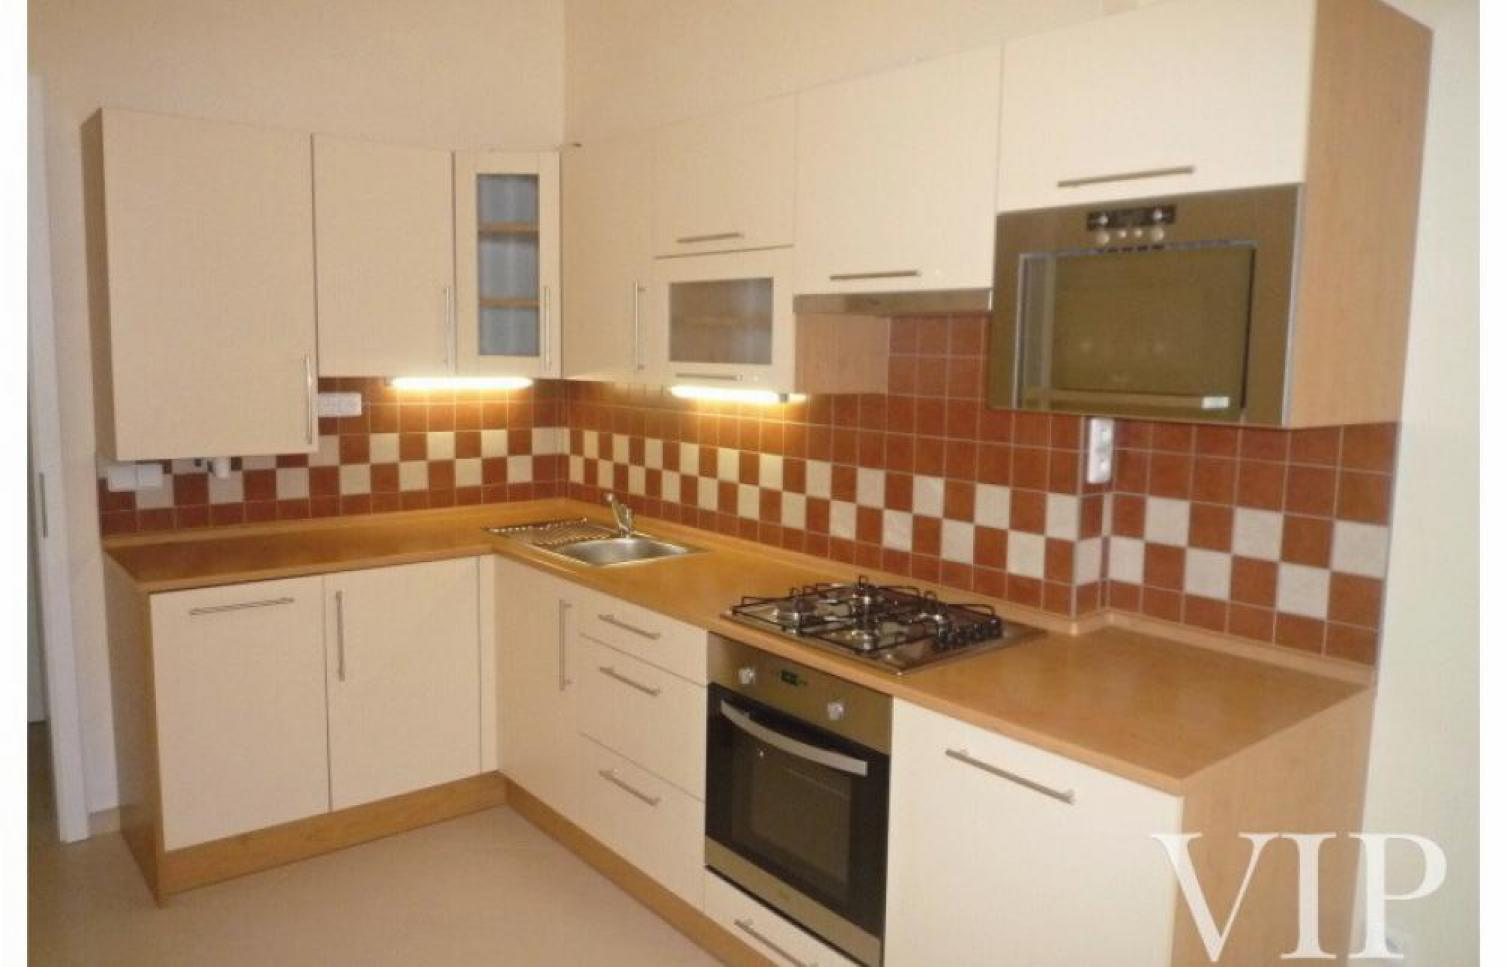 APARTMENT FOR RENT, street Chopinova, Prague 2 - Vonohrady